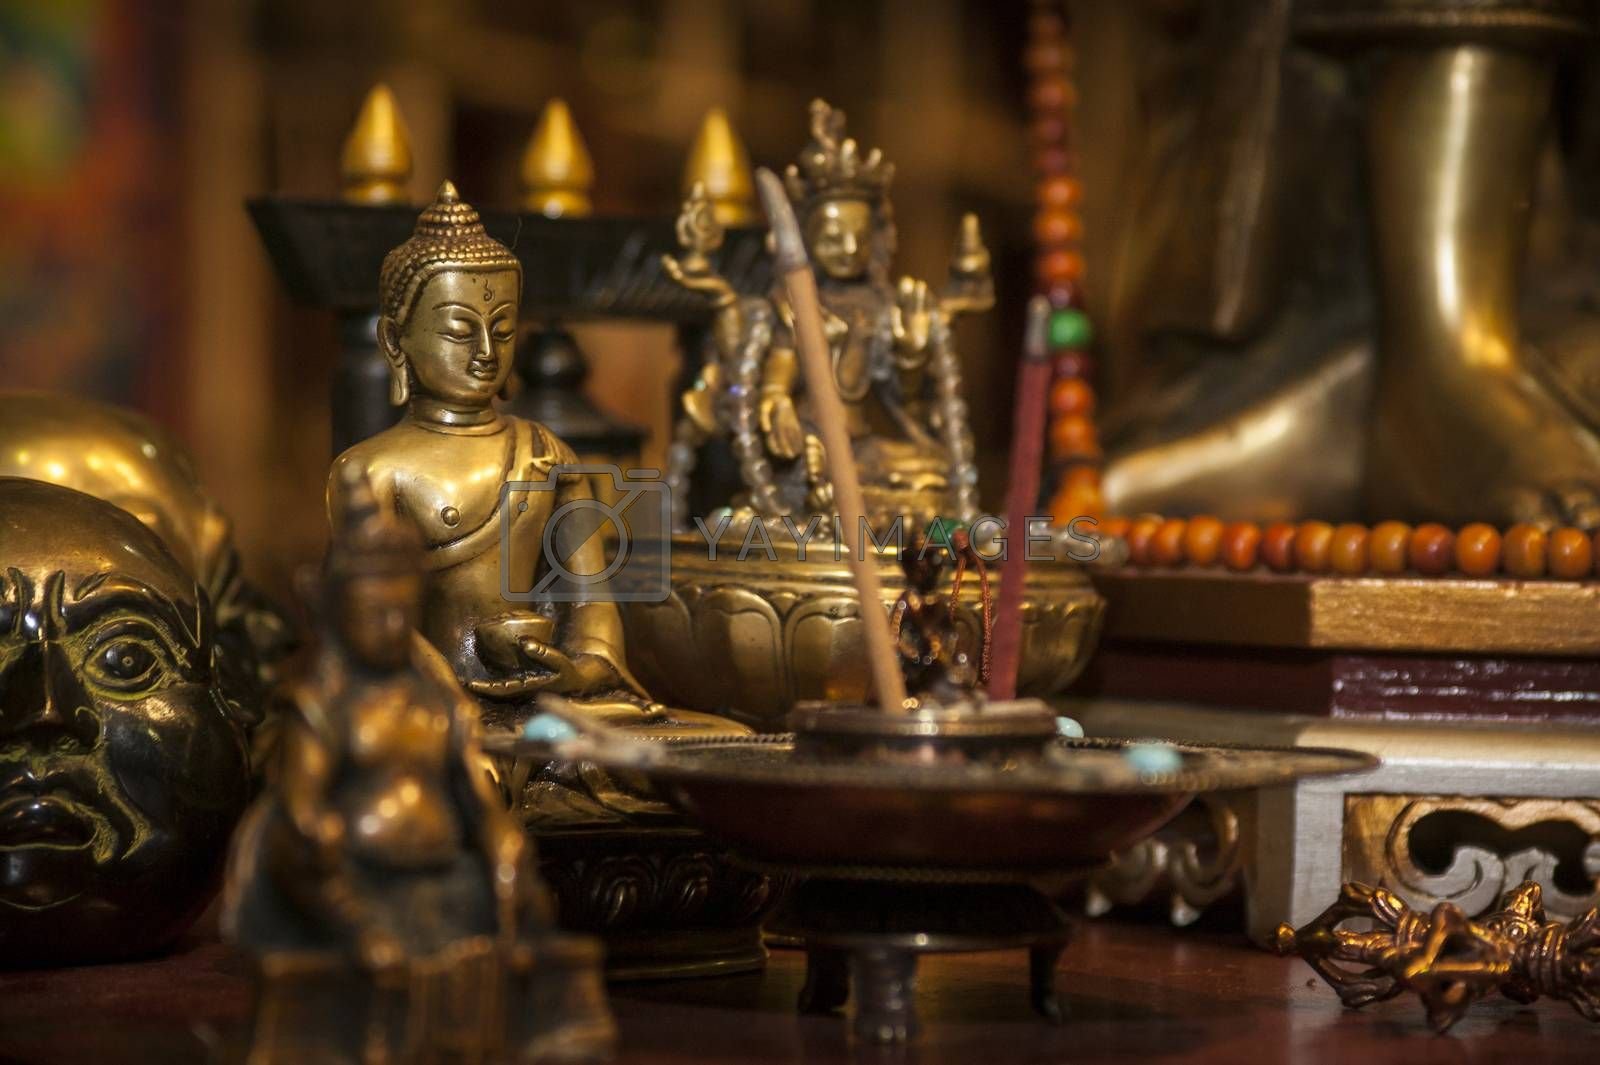 Oriental culture: Set of statues of Buddha and many other symbols of oriental culture in a beautiful bright and complete picture.